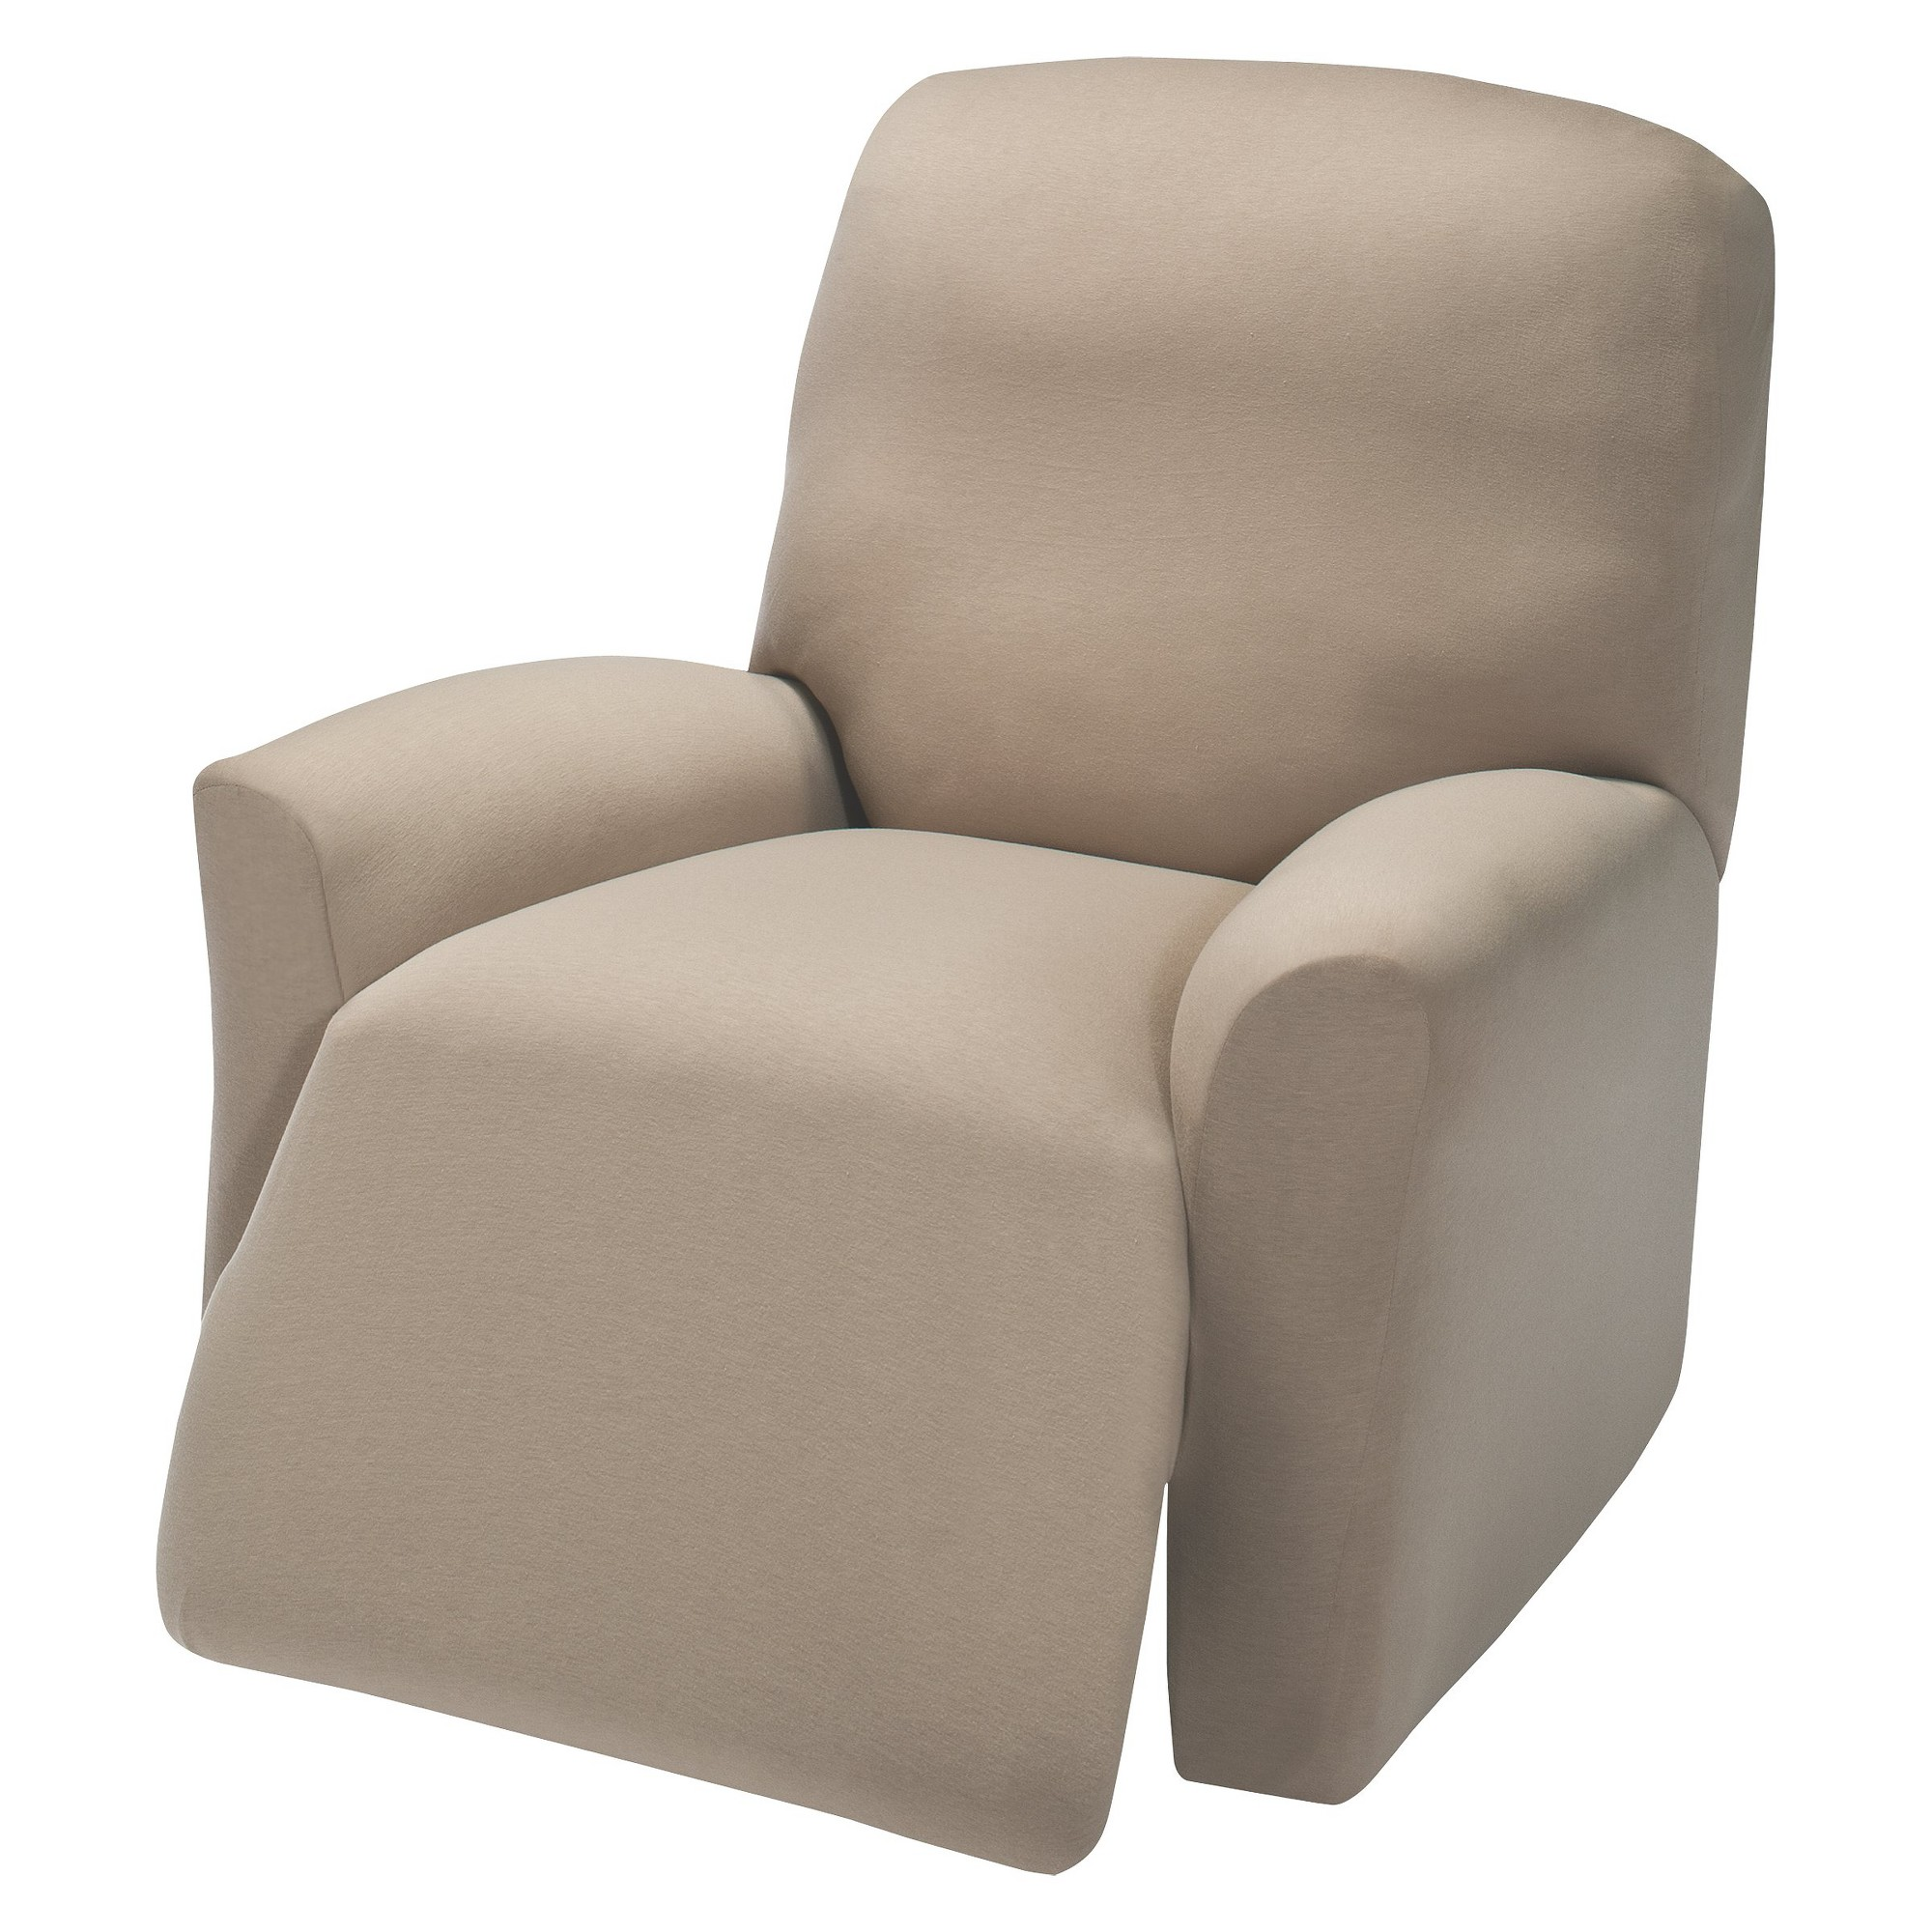 Linen Jersey Large Recliner Slipcover - Madison Industries